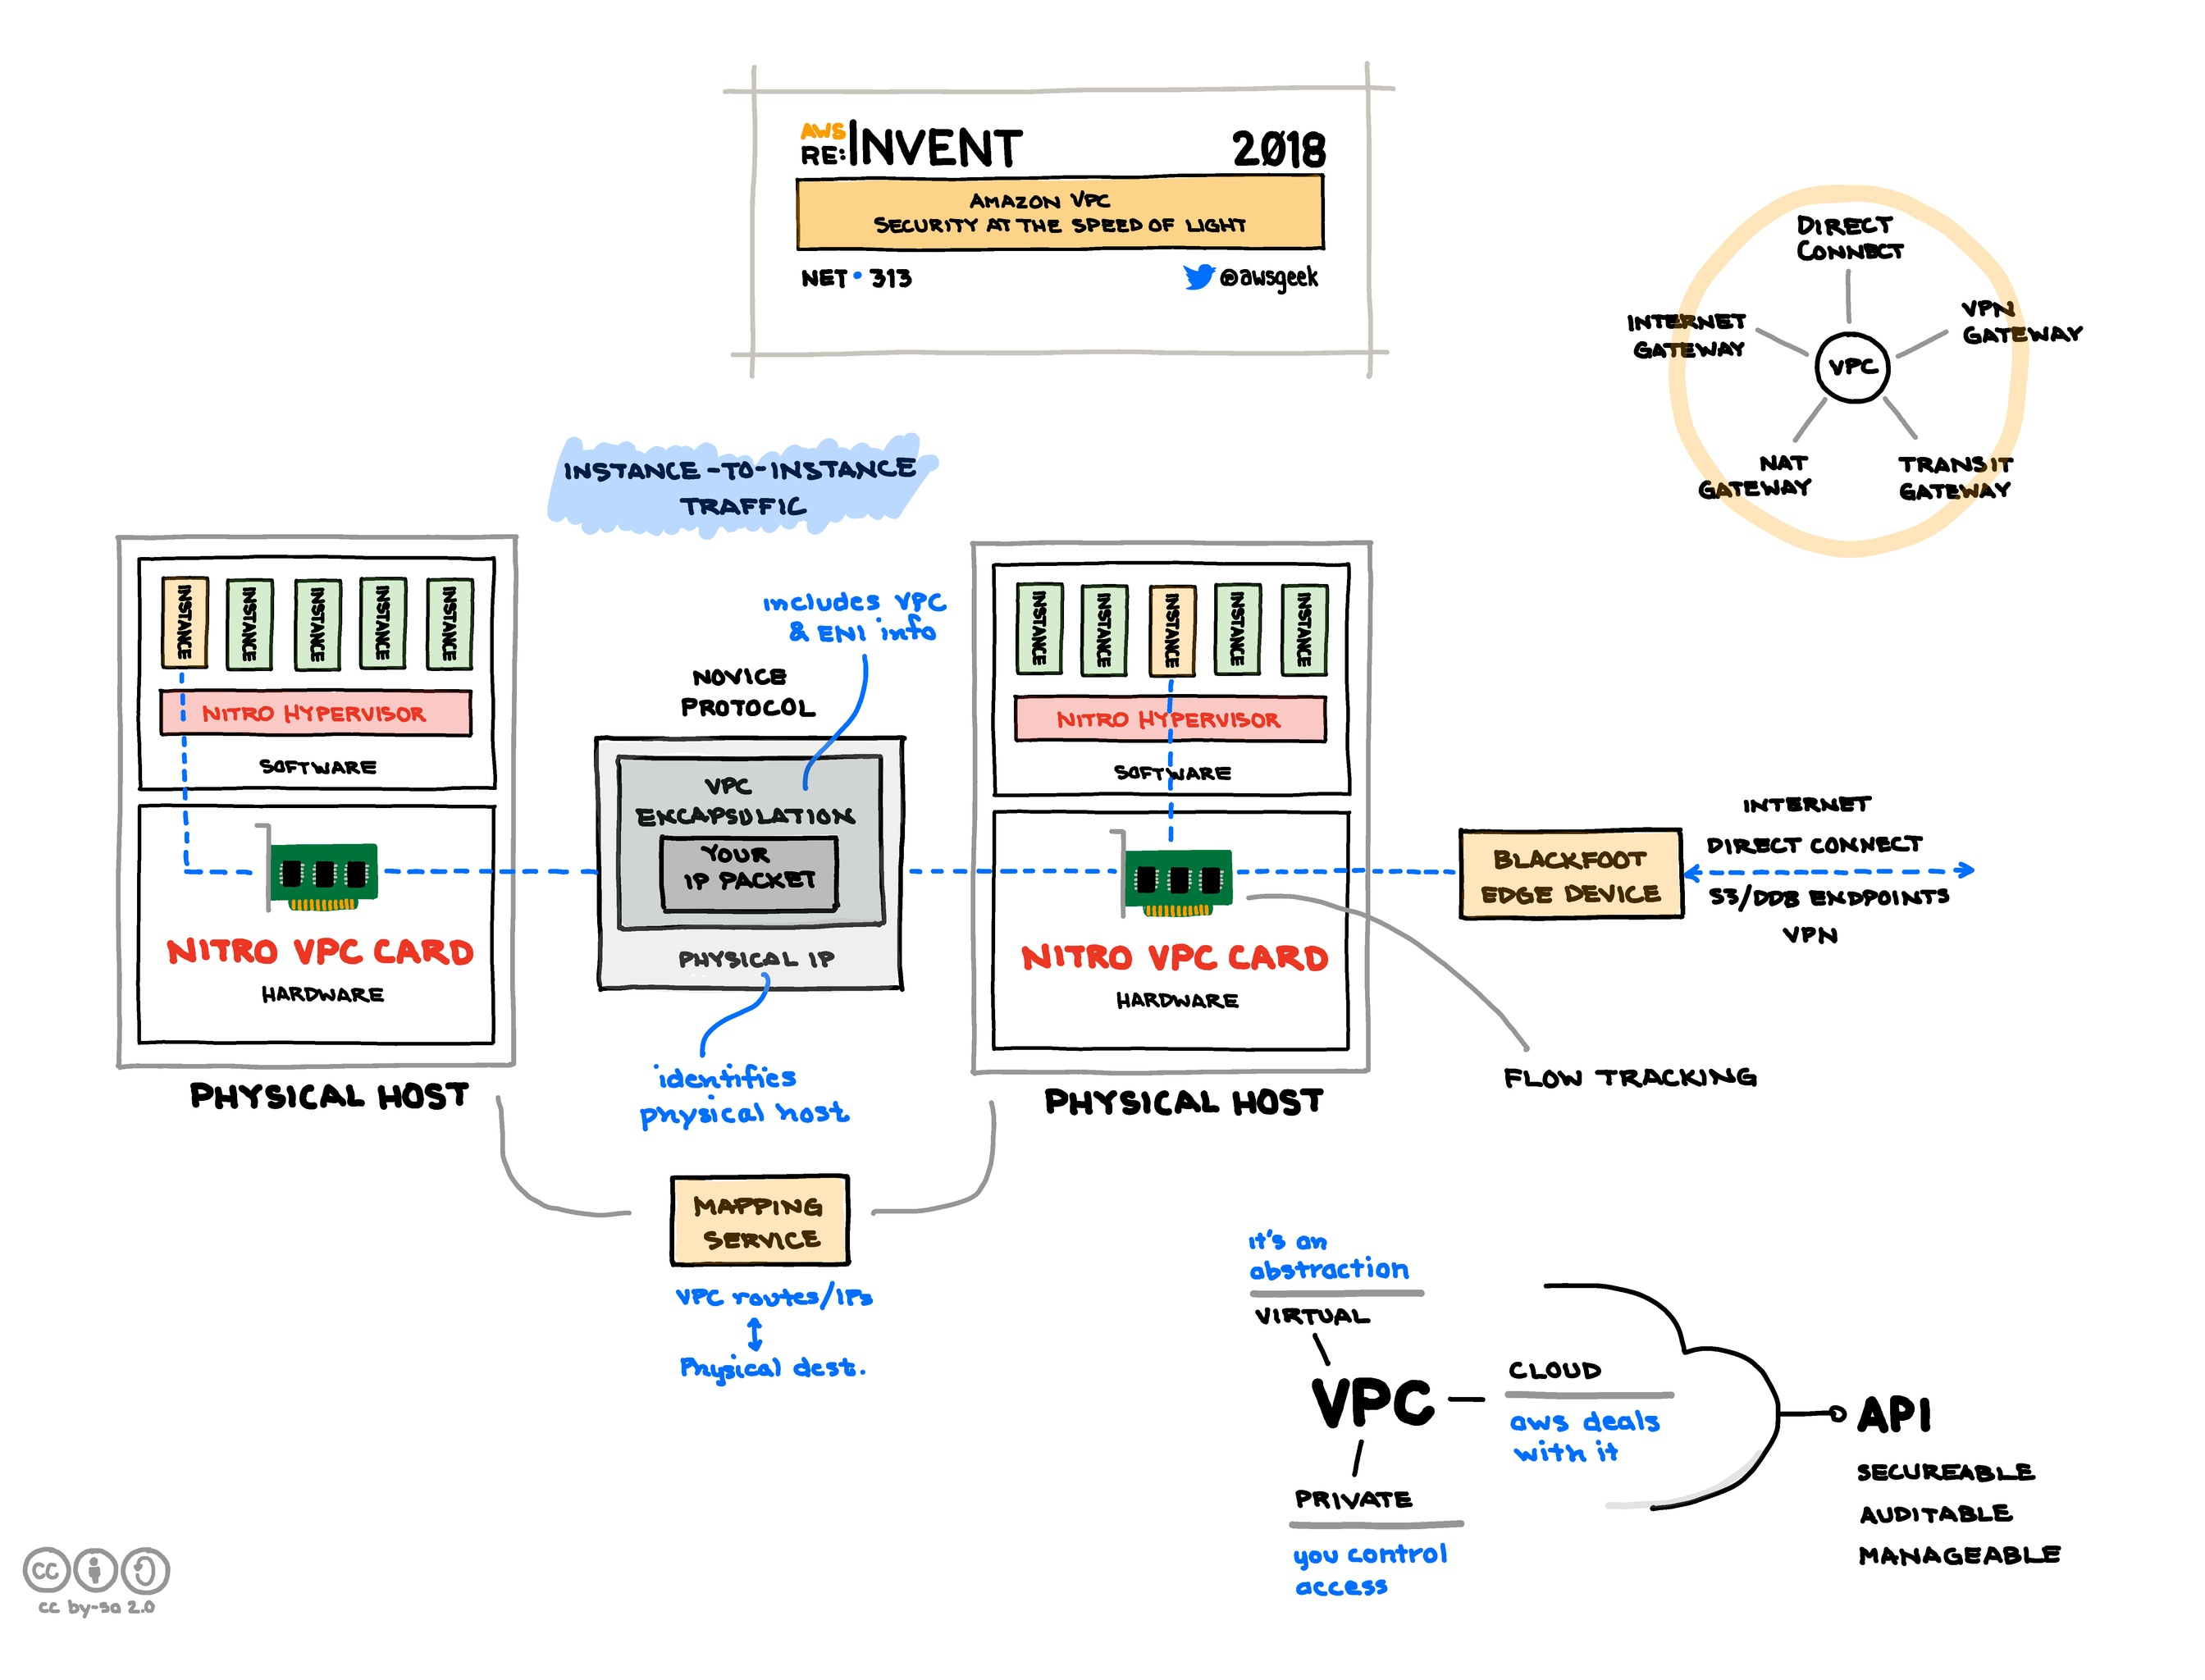 Amazon-VPC-Security-at-the-Speed-of-Light.jpg